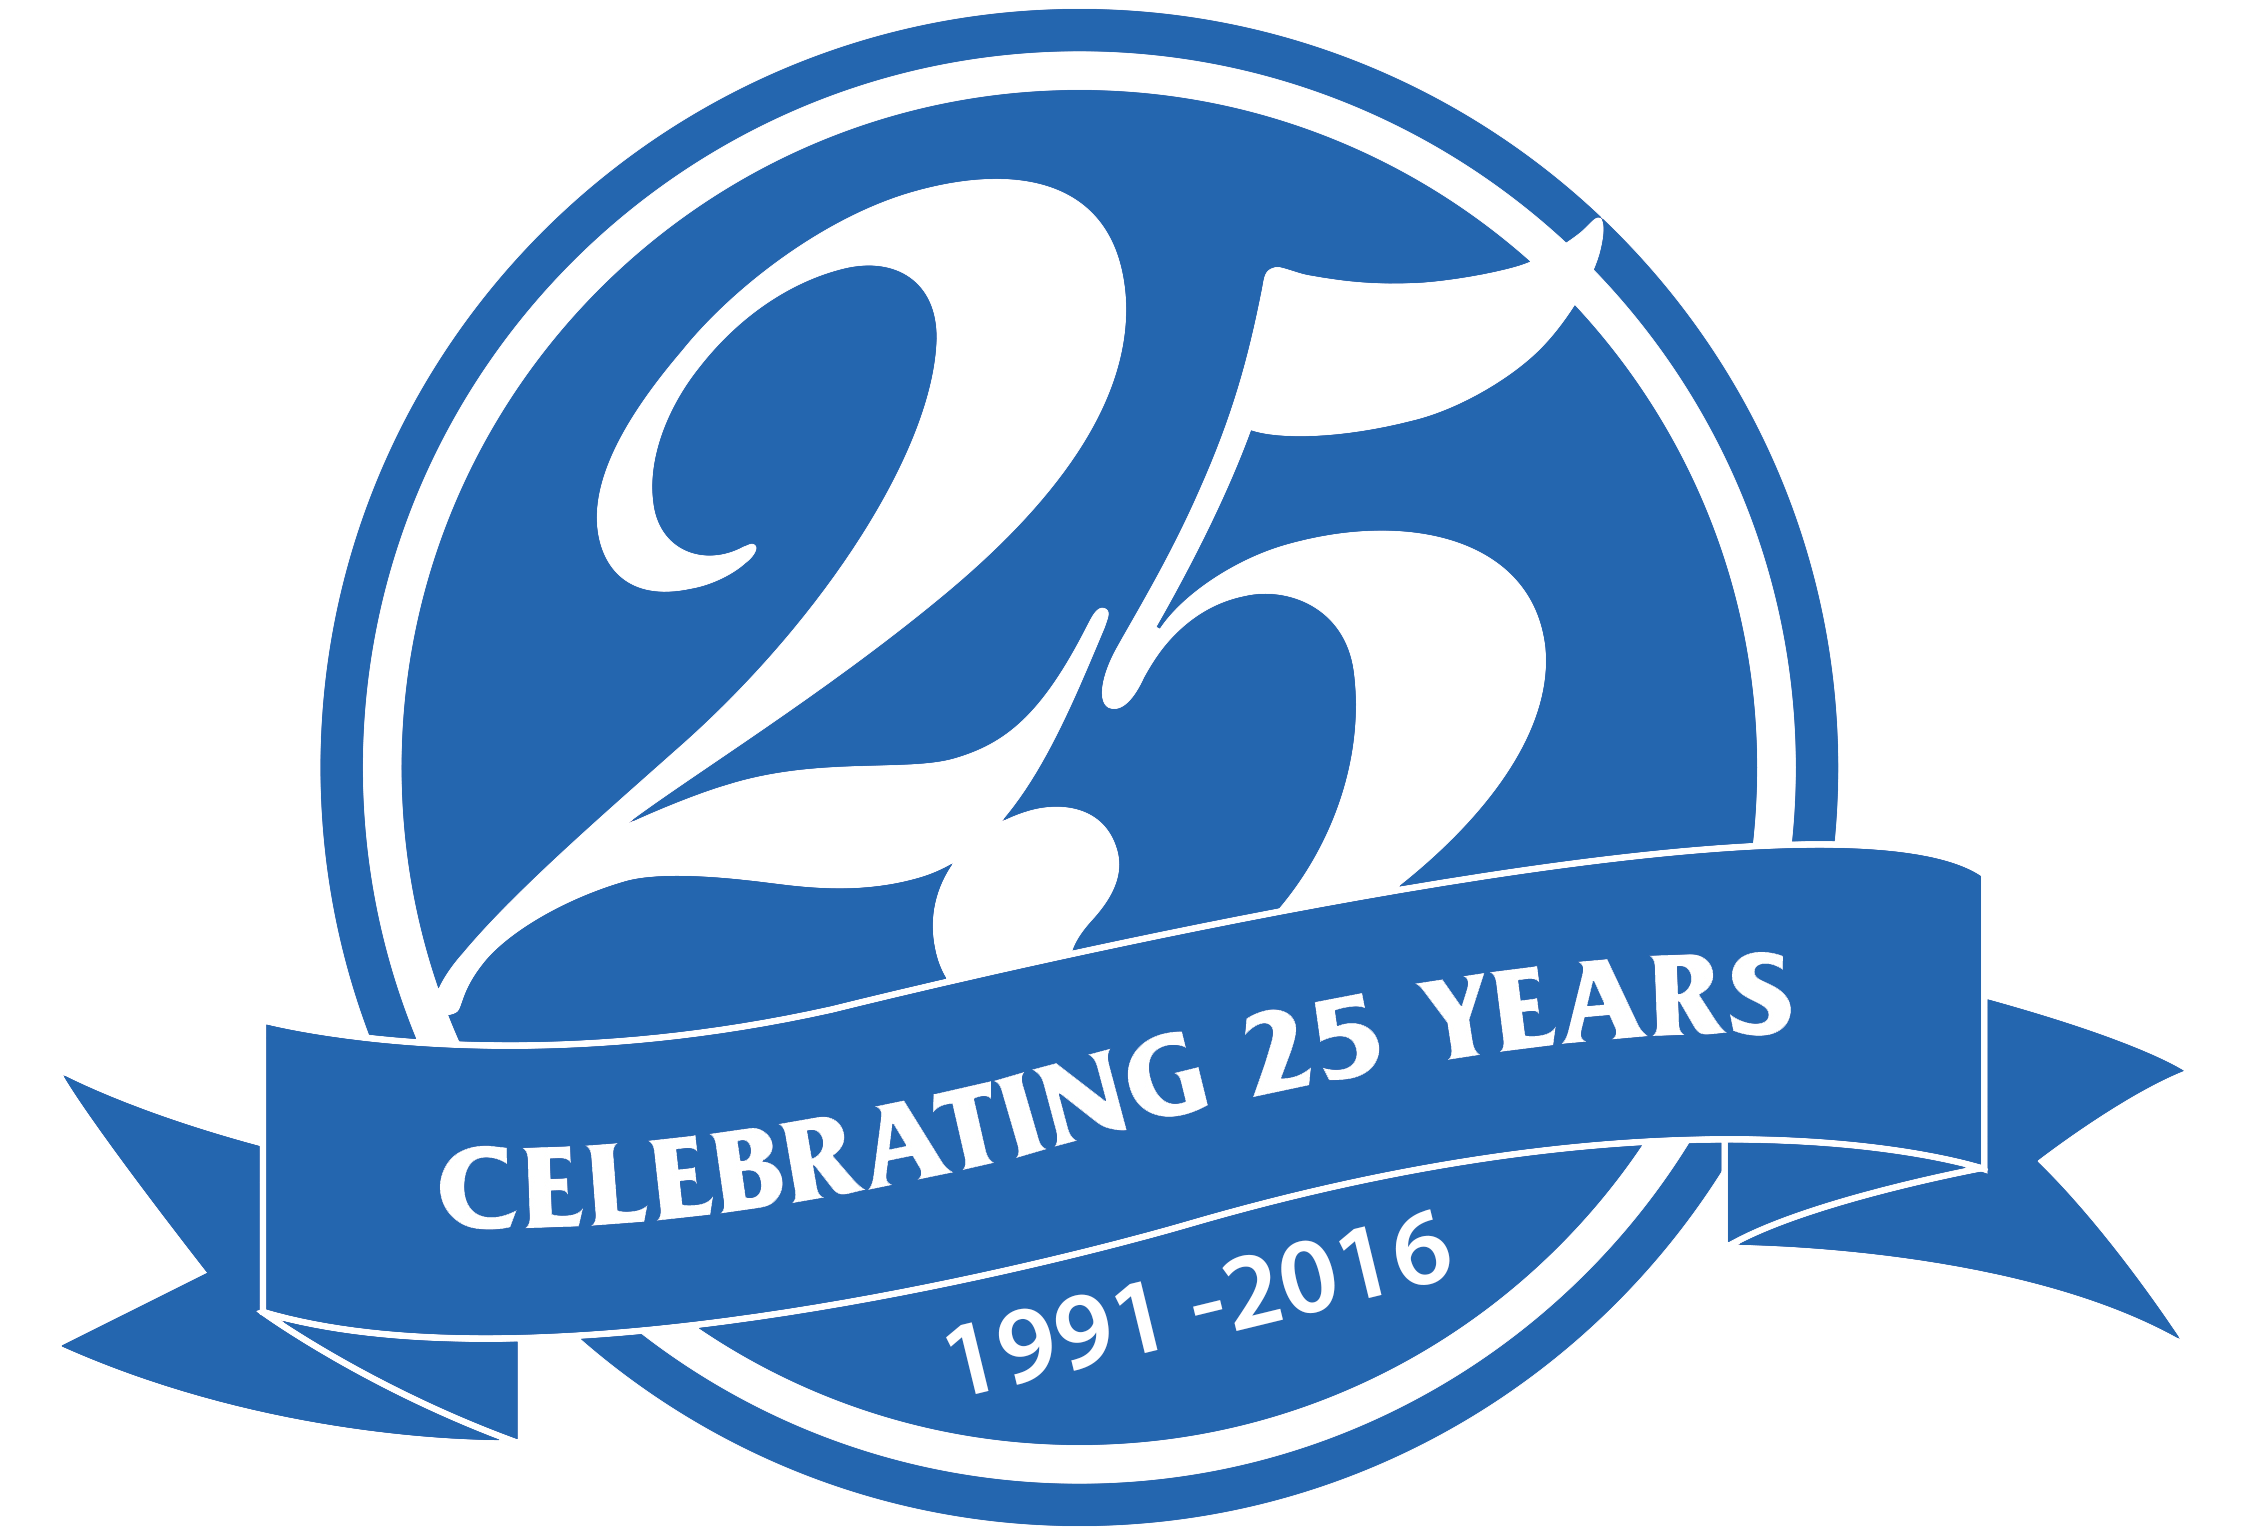 25 years logo png 7 » PNG Image.